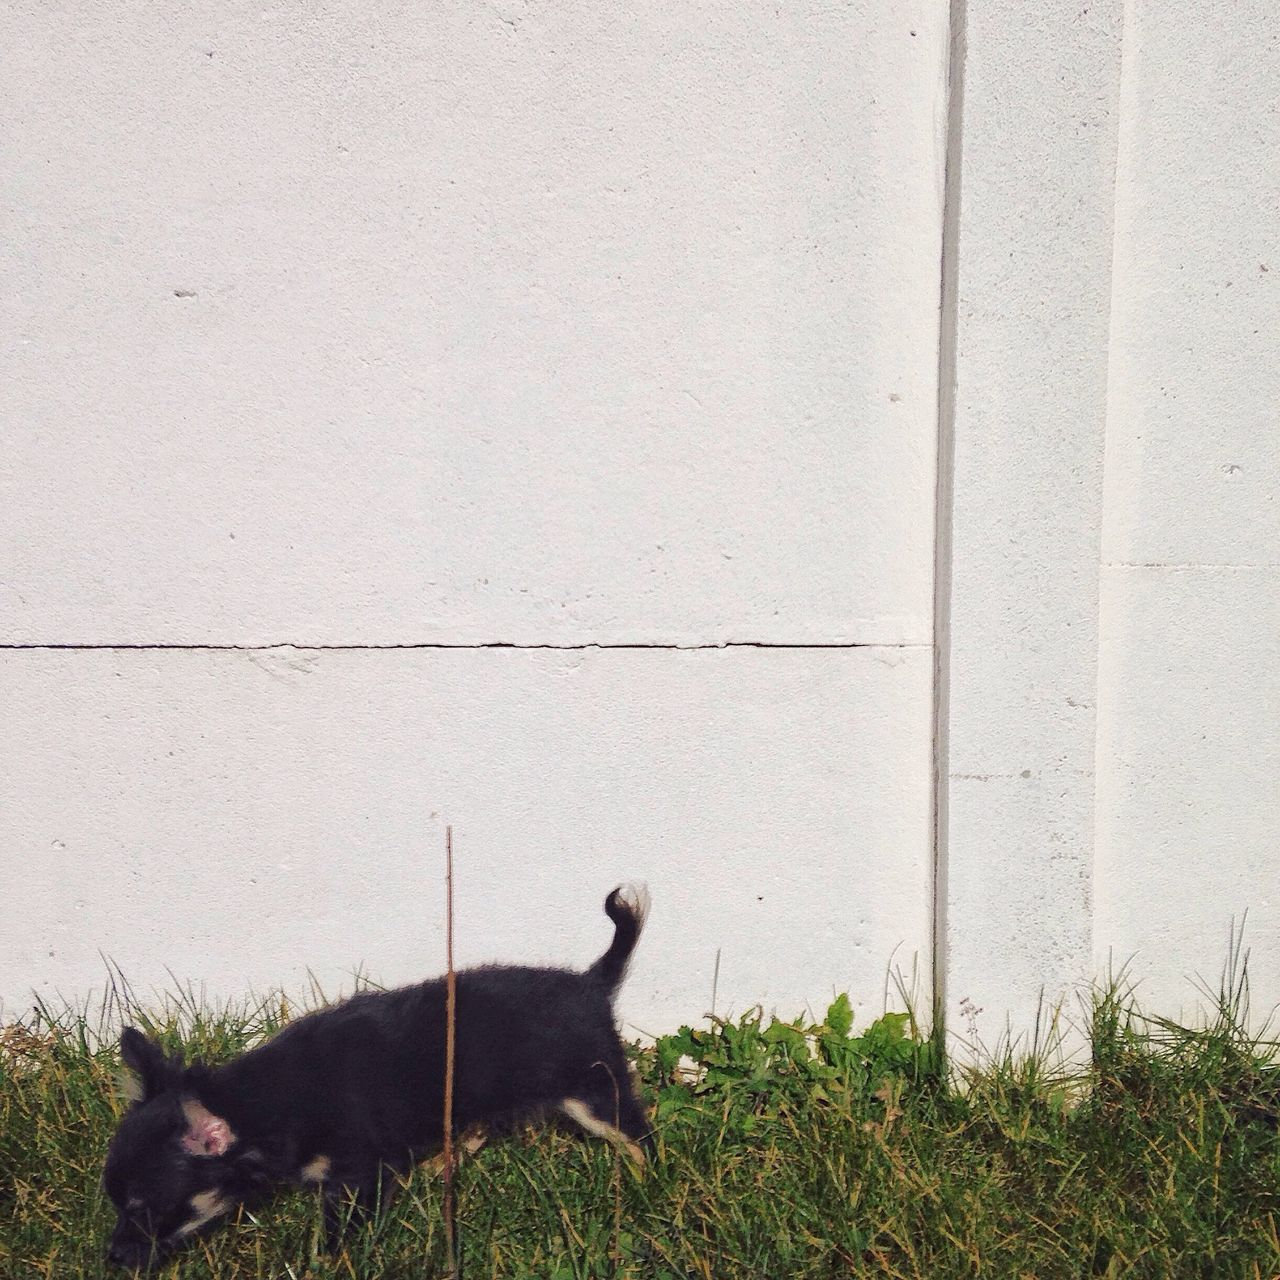 Puppet. Chihuahua Dog Animal Garden Sun Grass Minimalism Little Puppy Cute Lovely Urban Spring Fever